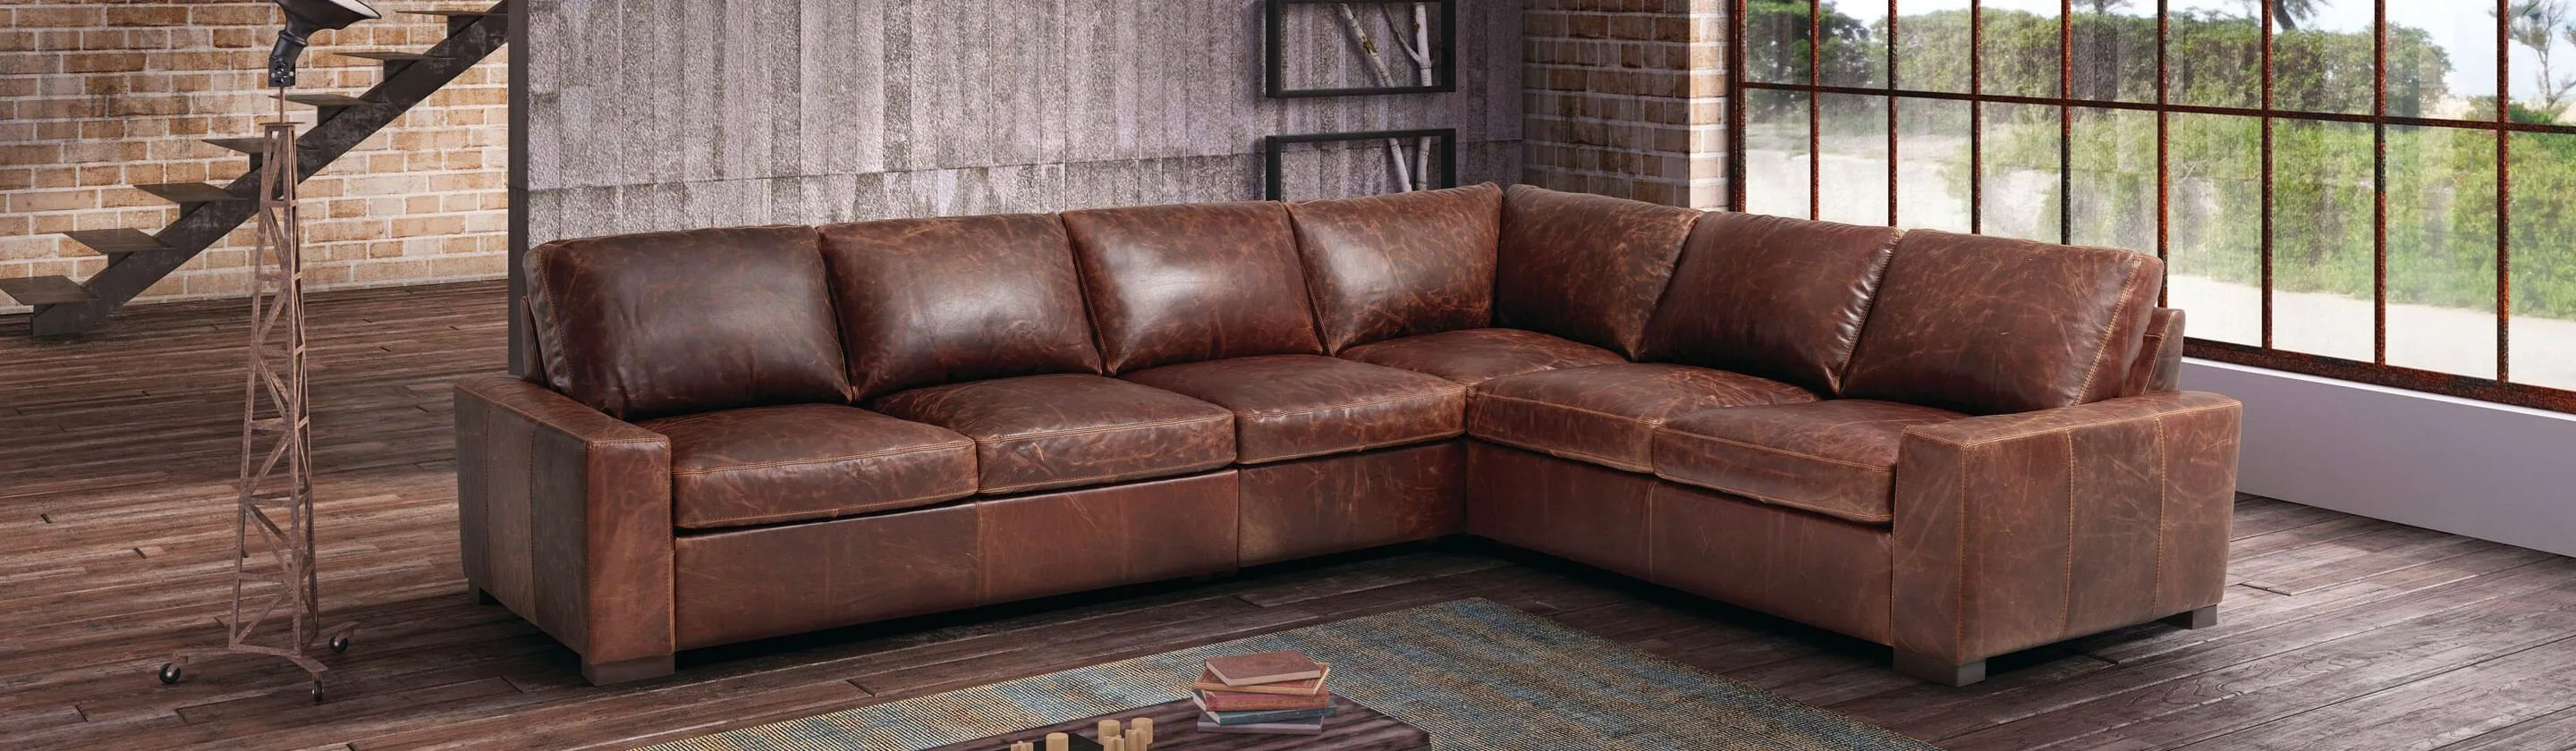 sectional sofas couches living room